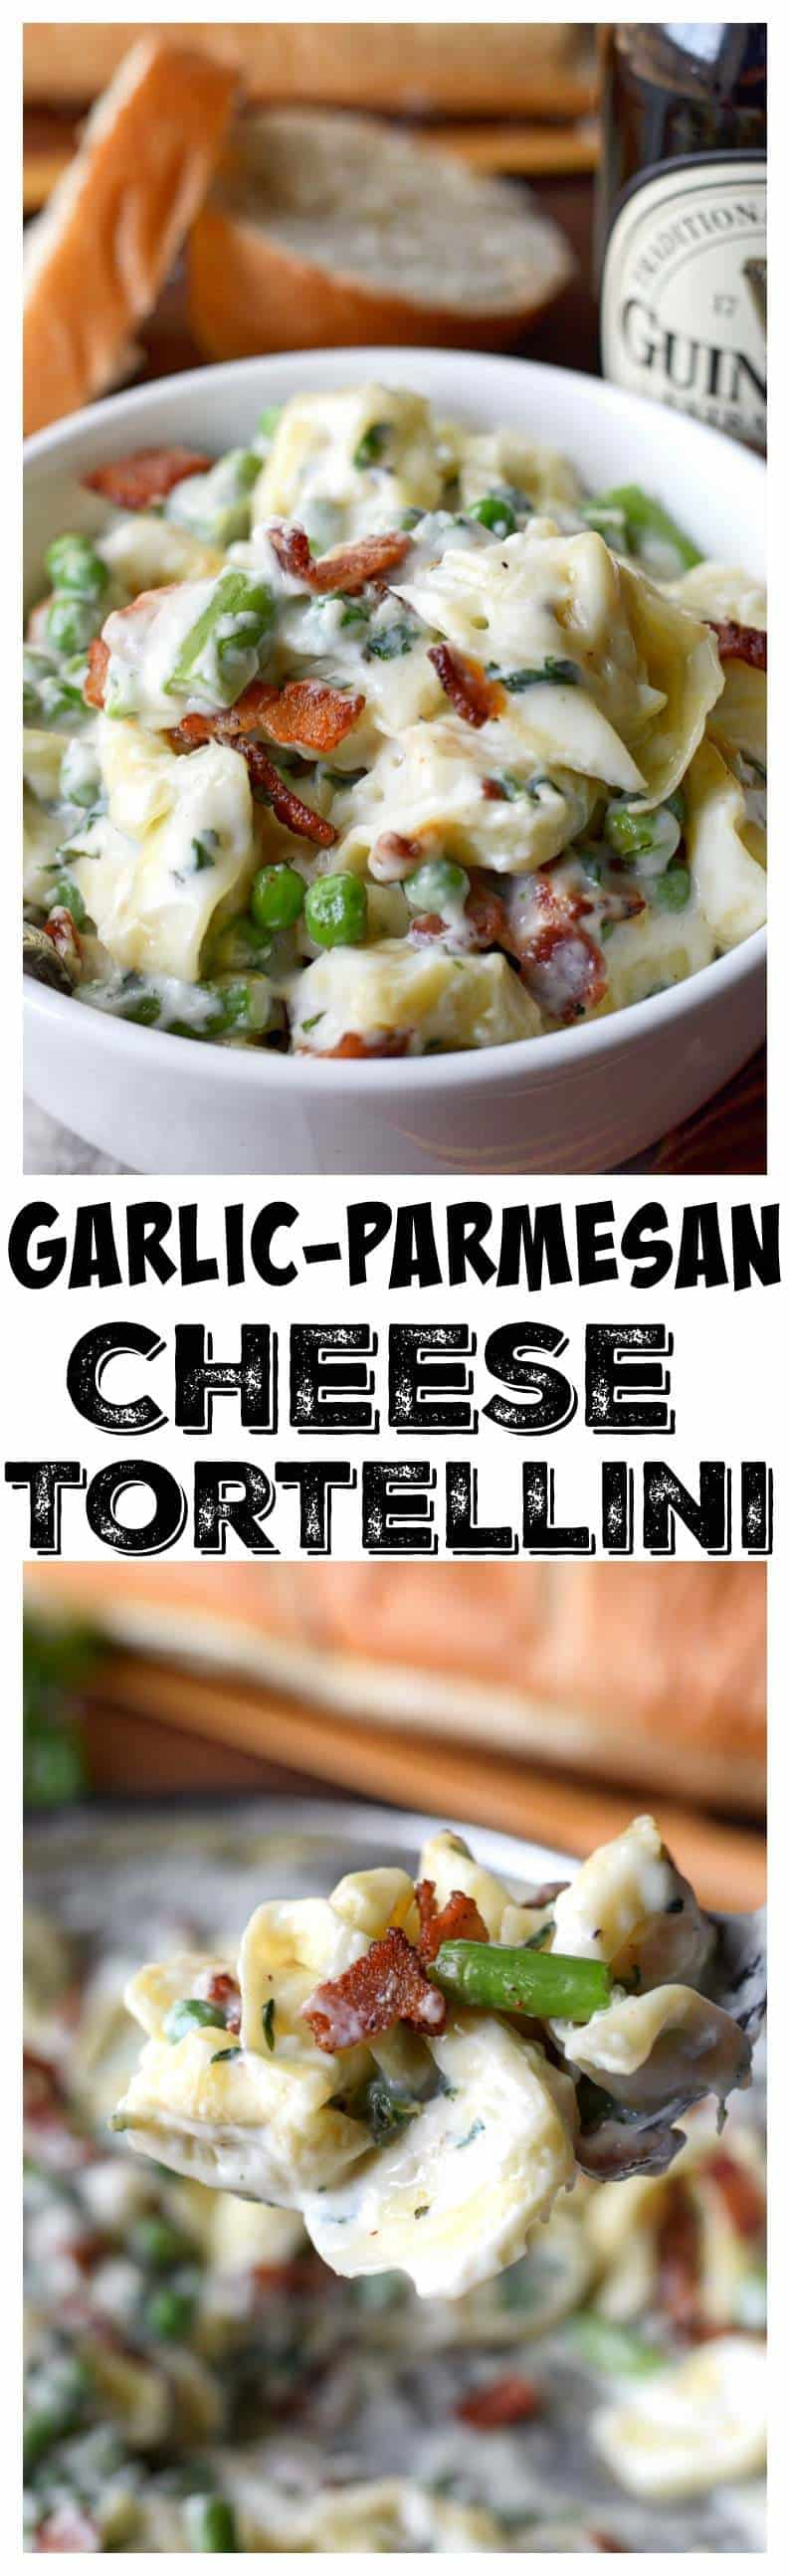 Garlic Parmesan cheese tortellini